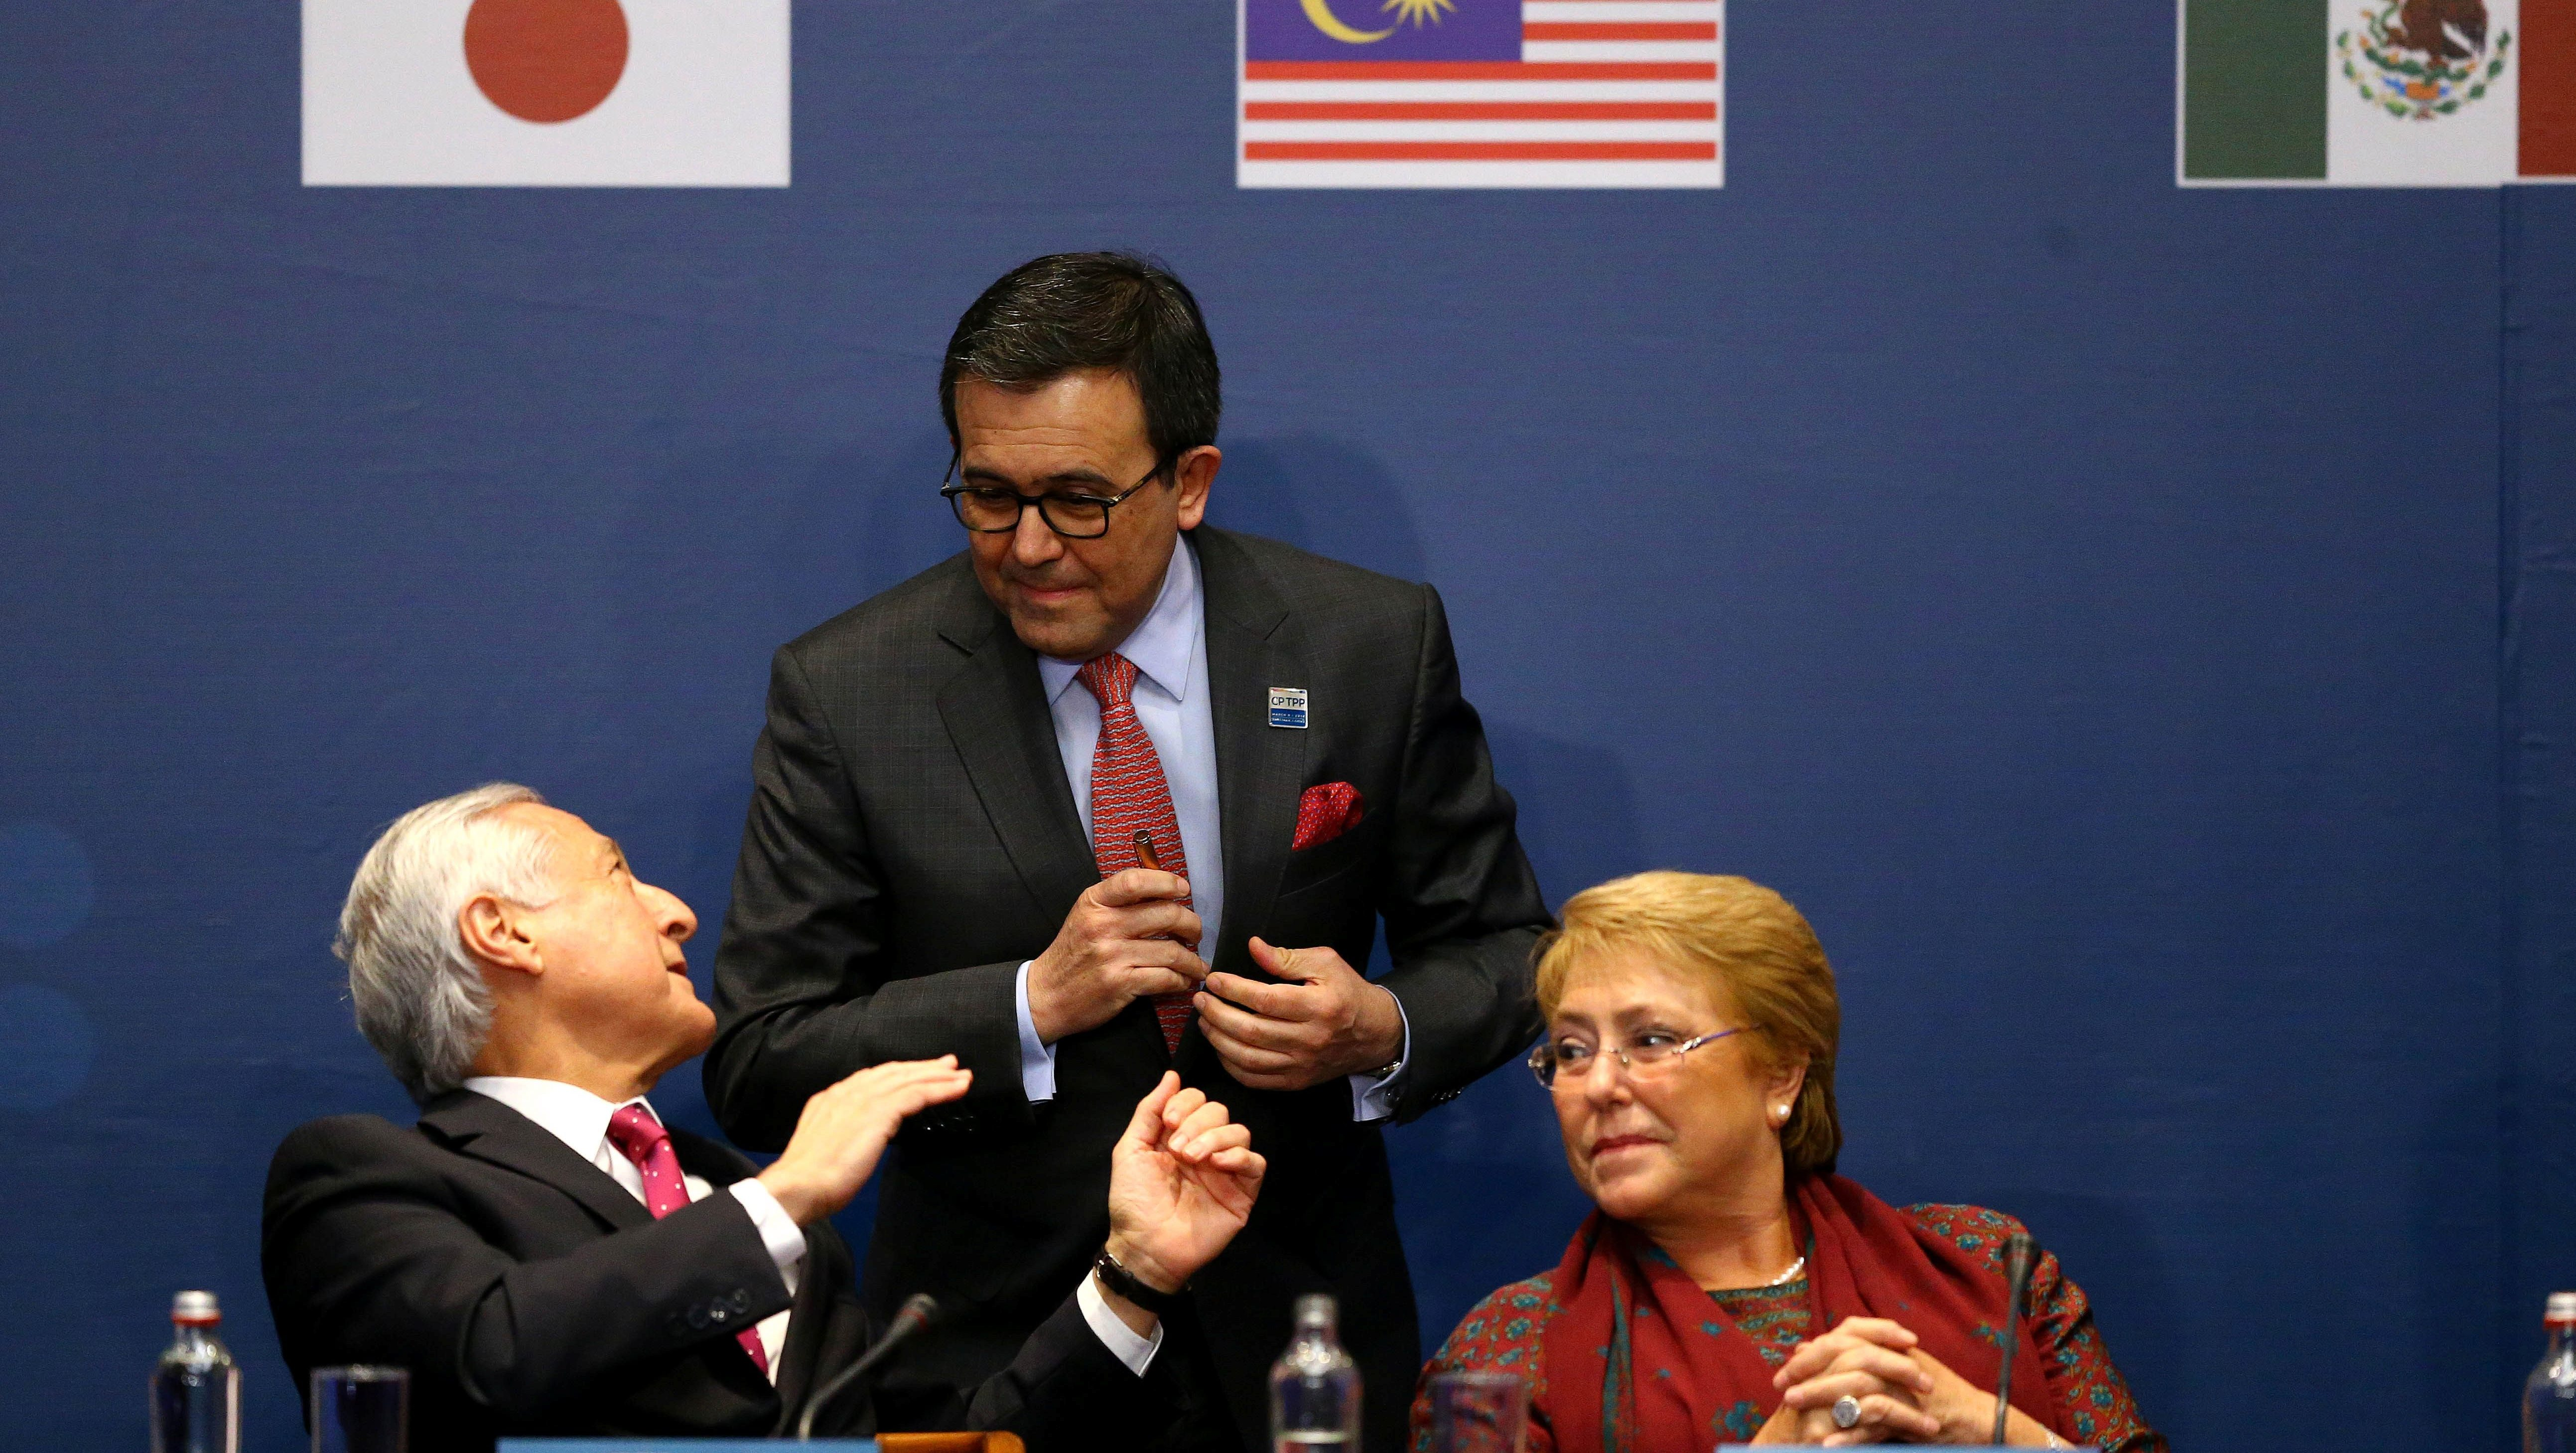 signing of the Trans-Pacific Partnership (TPP) trade deal